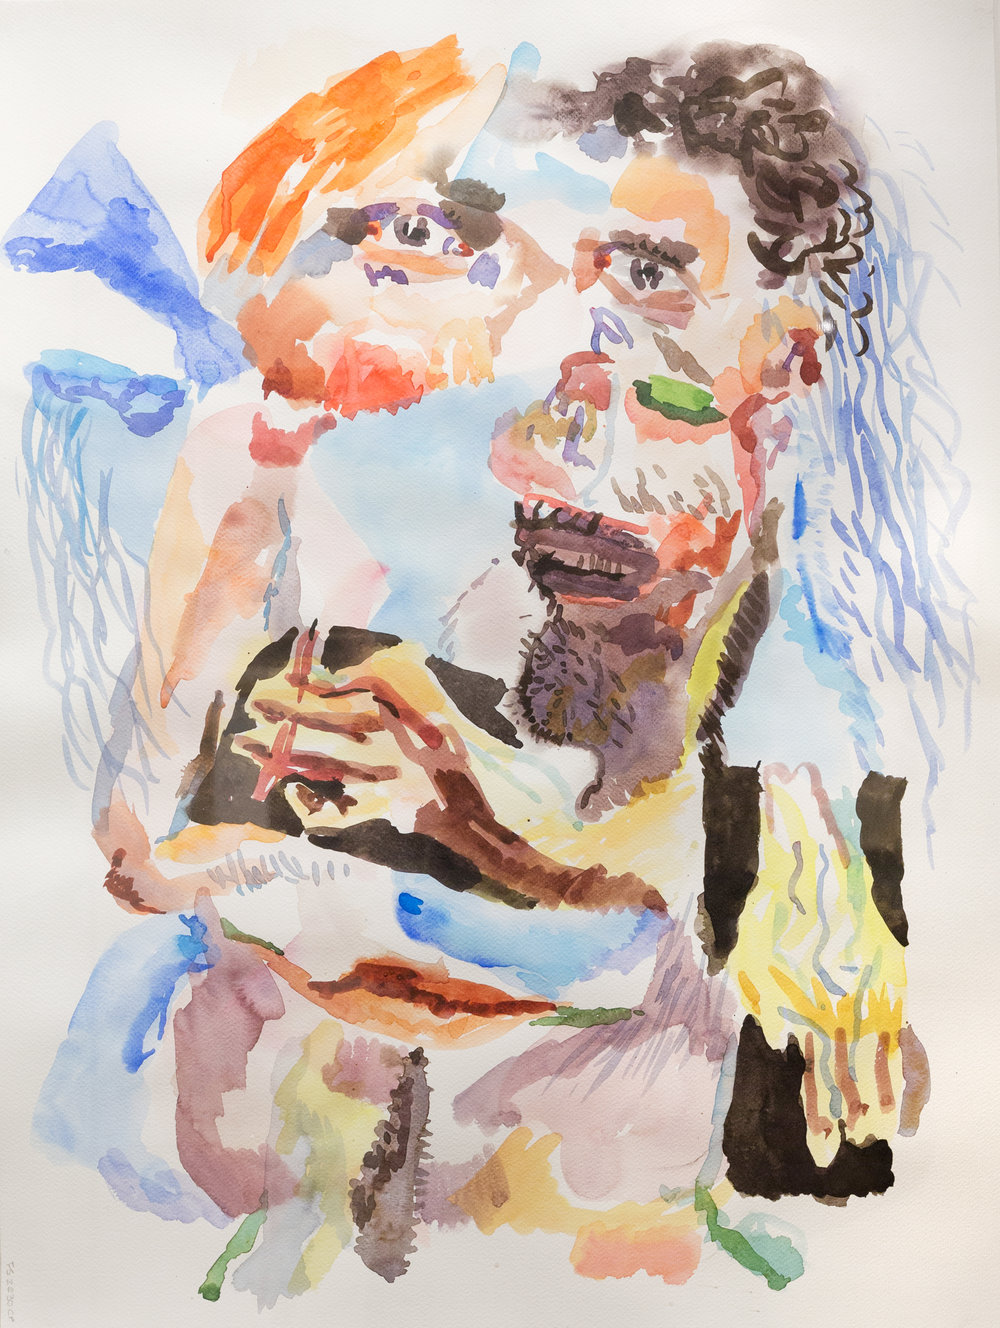 Colin Muir Dorward, Talking About What To Do Tonight, 2013, watercolour on paper, 76 x 55 cm, 2017